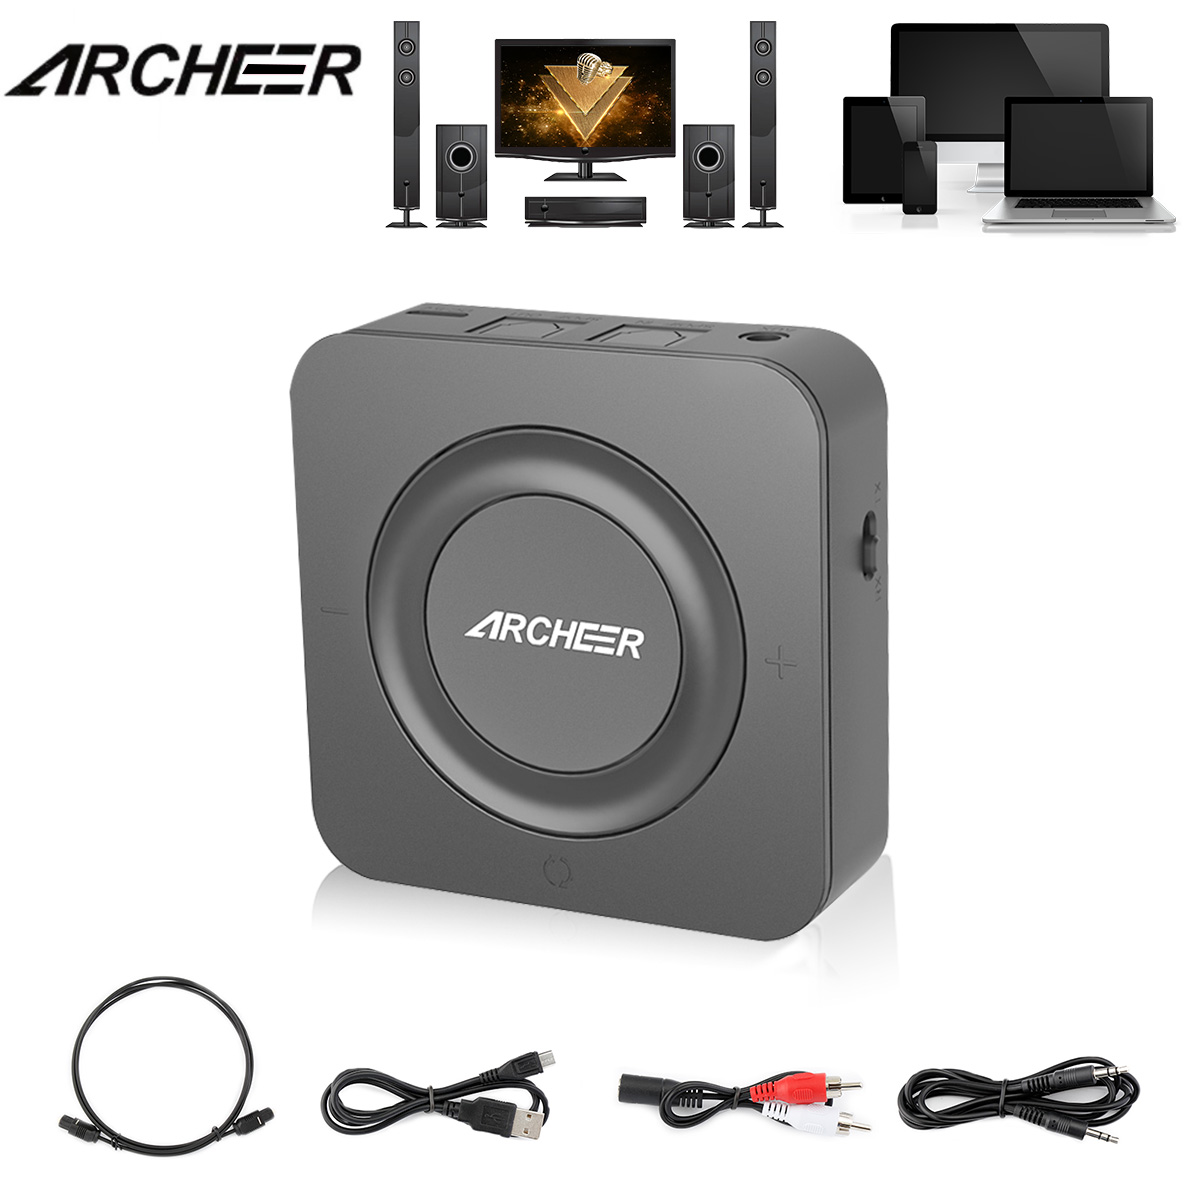 bluetooth 4.1 Transmitter and Receiver, ARCHEER 3.5mm (AUX and RCA) Wireless Audio Adapter Digital Optical TOSLINK (SPDIF), Pair 2 At Once, Aptx Low Latency, for TV / Home Stereo